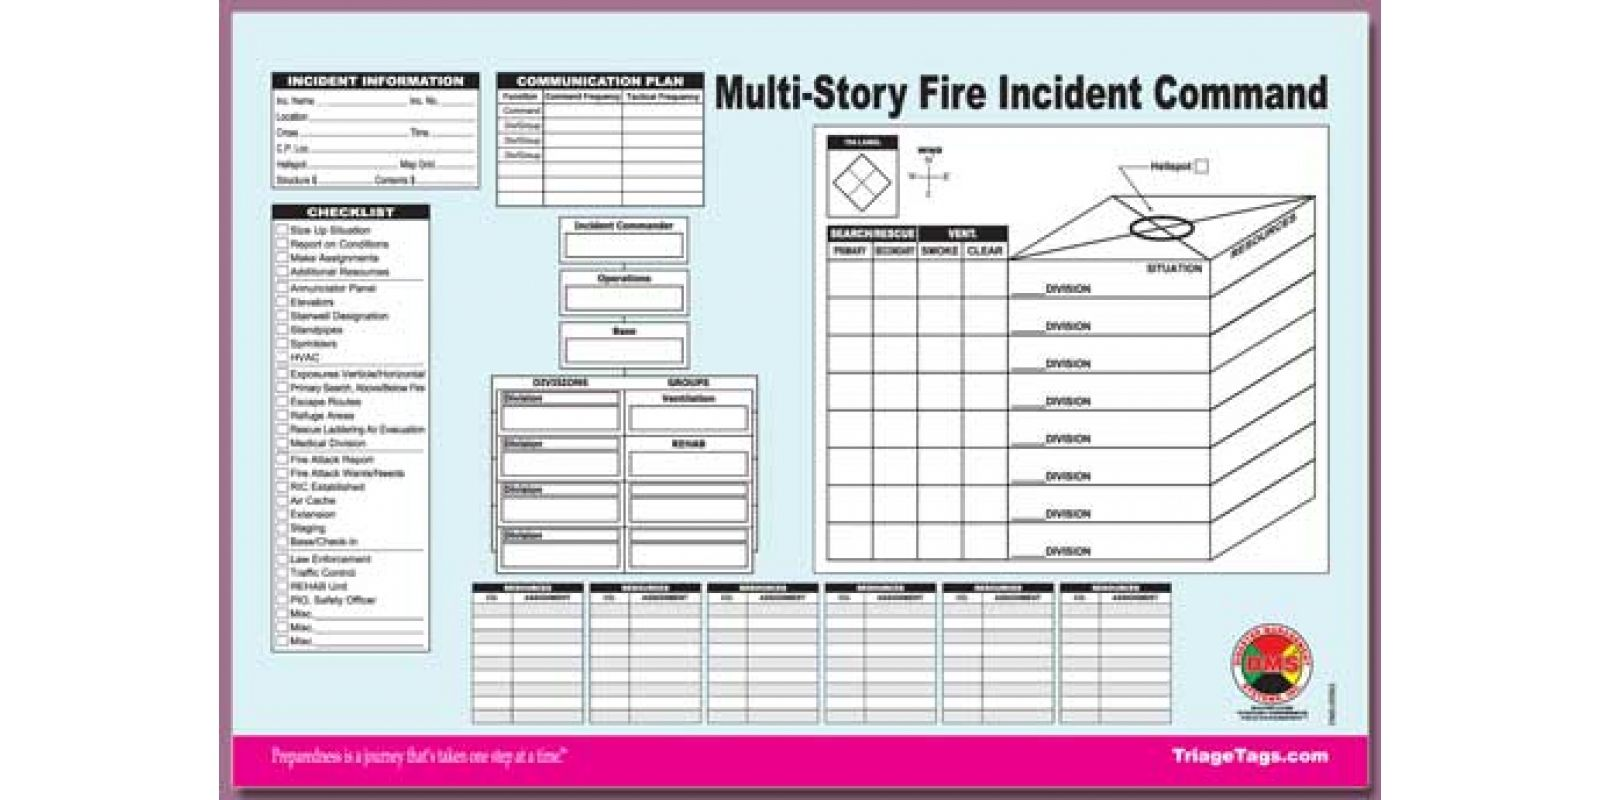 Pin By Triagetags On Emergency Management In 2020 Command Organizational Tool Worksheets